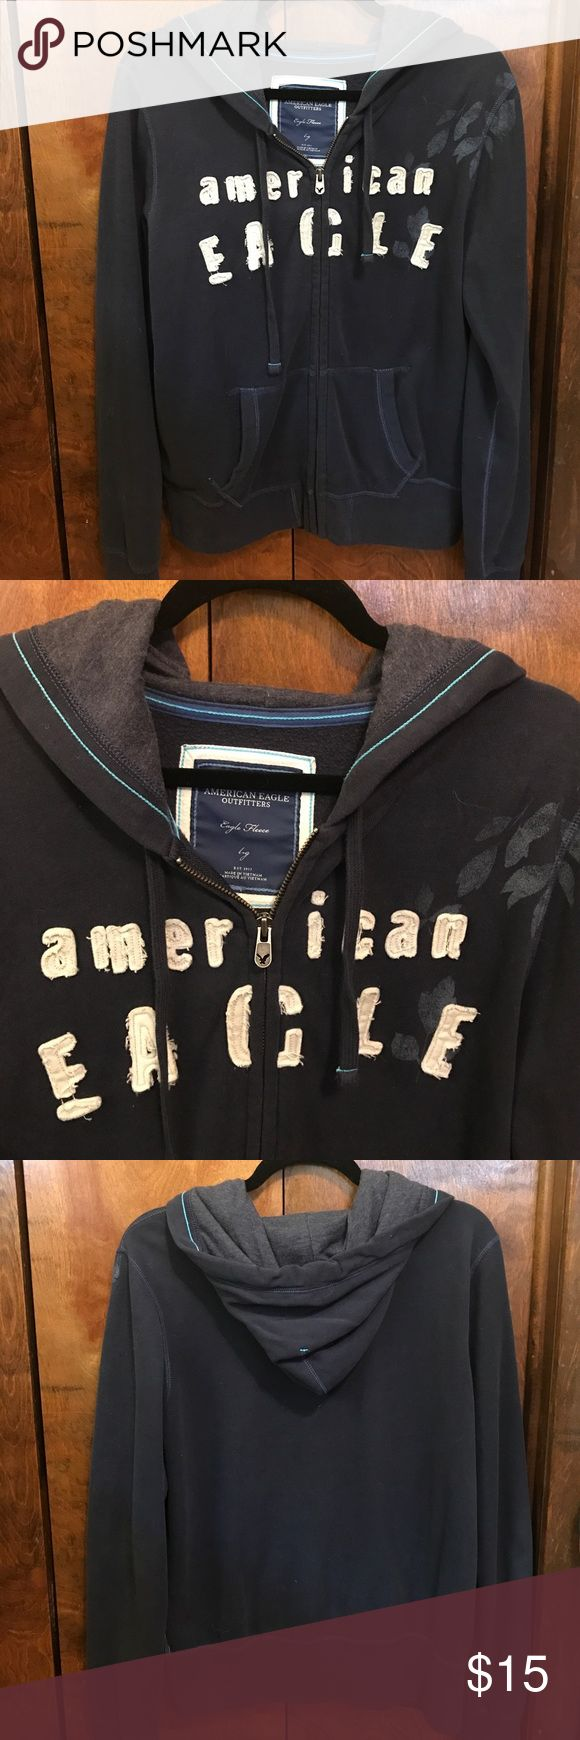 American Eagle Zip Up Dark blue American Eagle zip up, great condition, size large on tag - but fits more like a bigger medium. Make an offer! American Eagle Outfitters Tops Sweatshirts & Hoodies